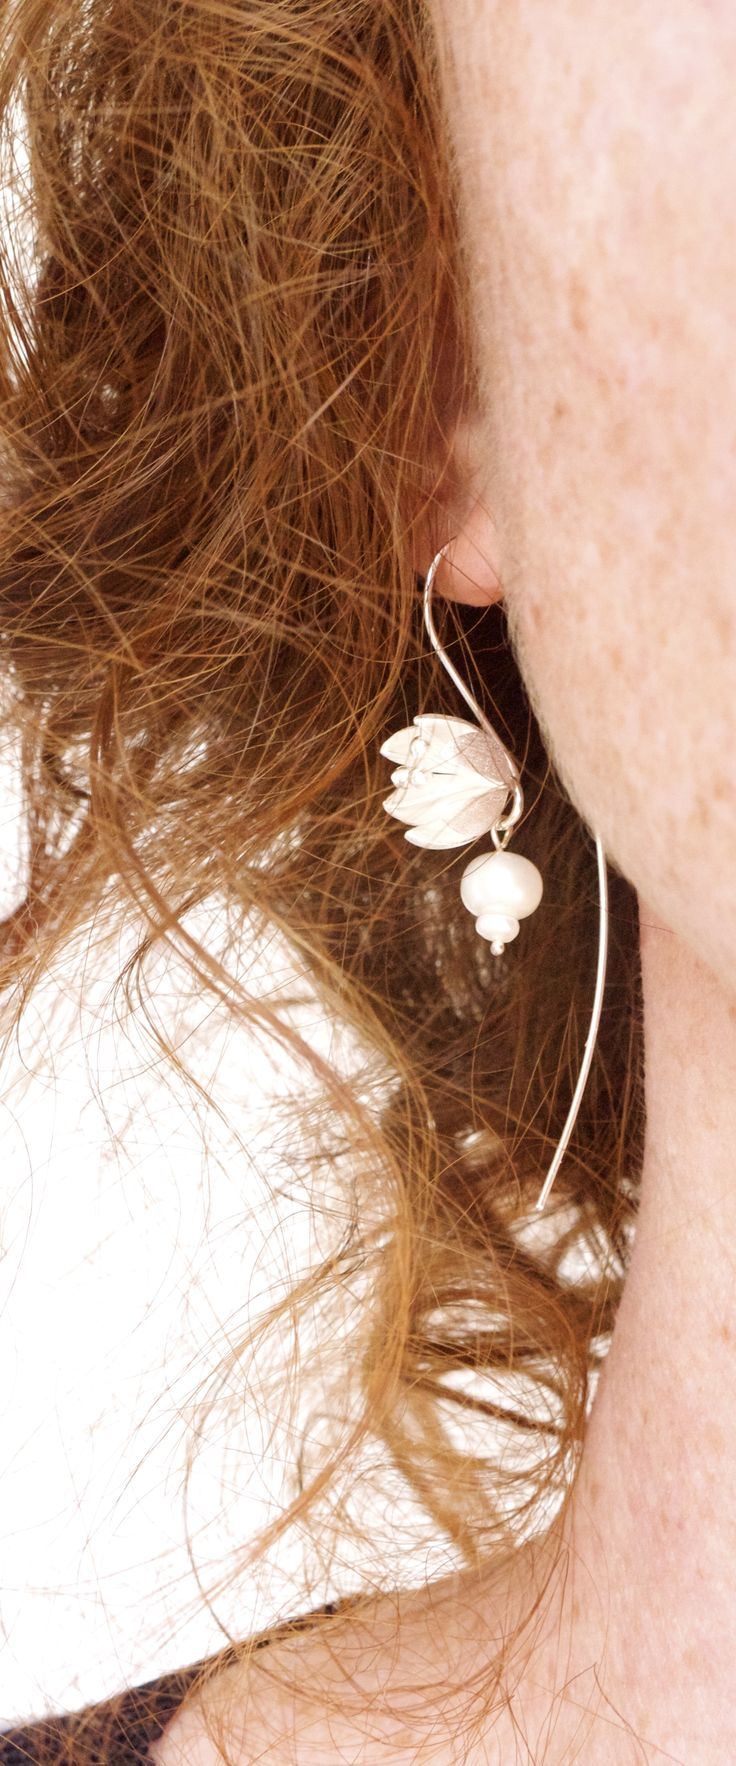 Floral sterling and pearl sculptural earrings. Botanical inspired statement earrings from The Pillow Book. #botanical #earrings #floral #flower #jewellery #sculptural #fashion #nature #spring